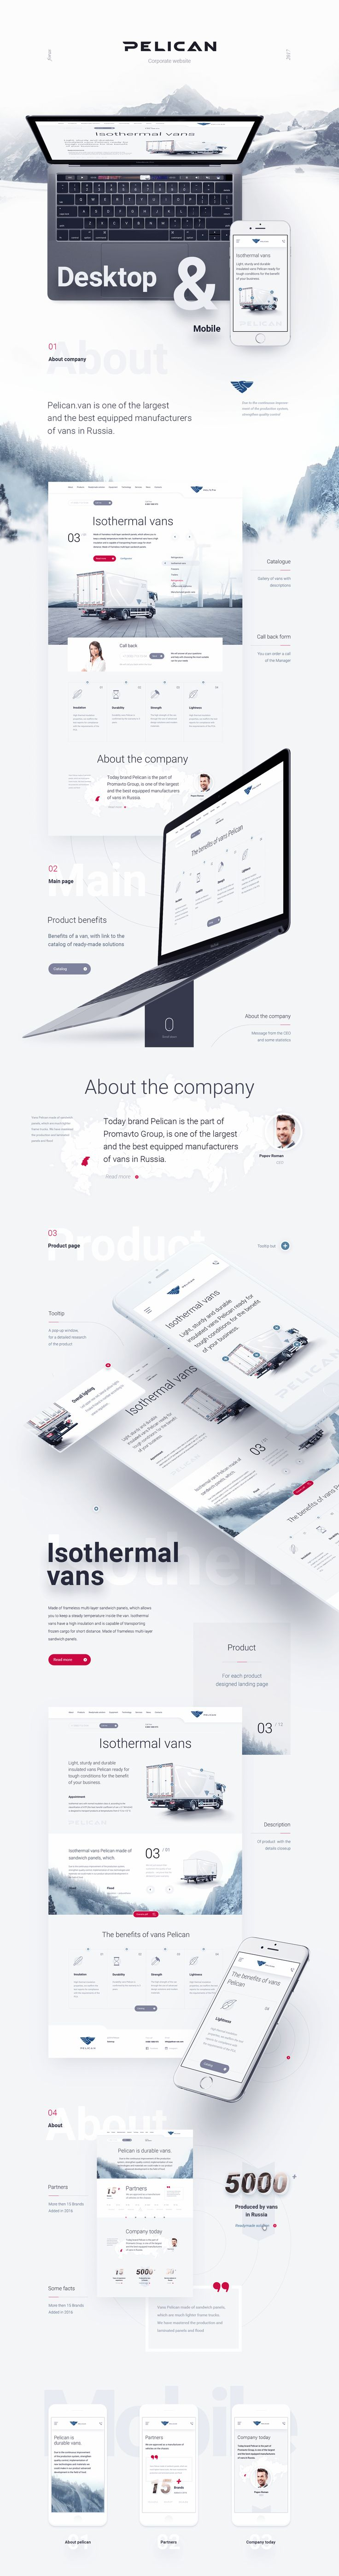 Pelican by Dmitry Kolesnikov #web #design #UI #UX